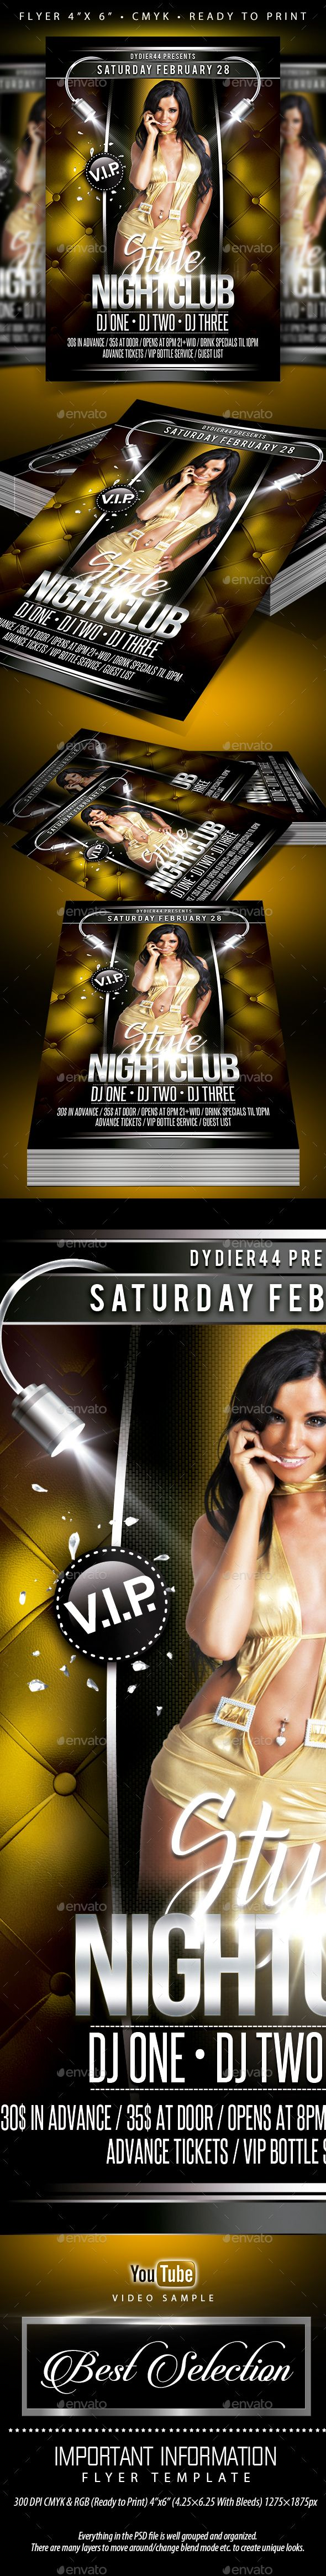 Style Nightclub Flyer Template 4x6 And